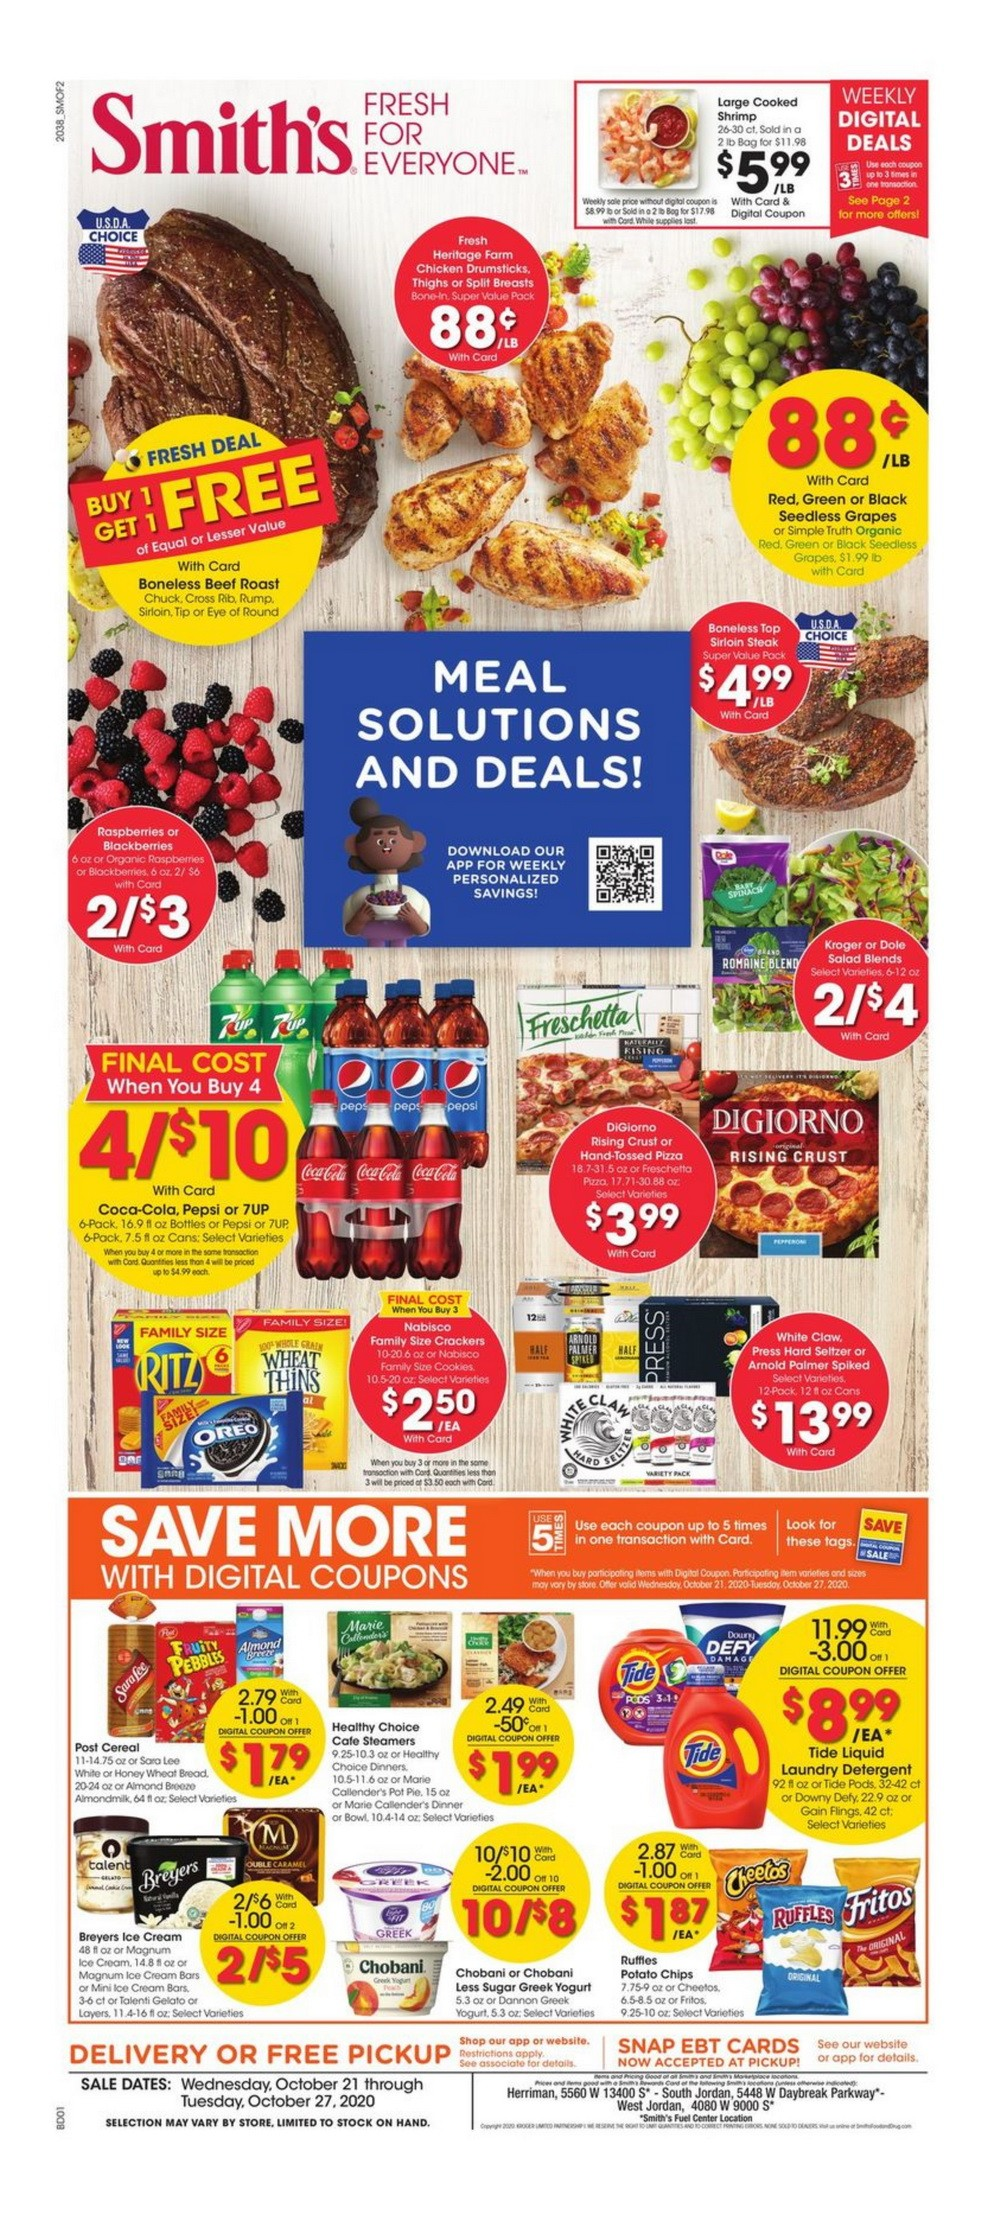 Smith's Food and Drug Weekly Circular Oct 21 - Oct 27, 2020